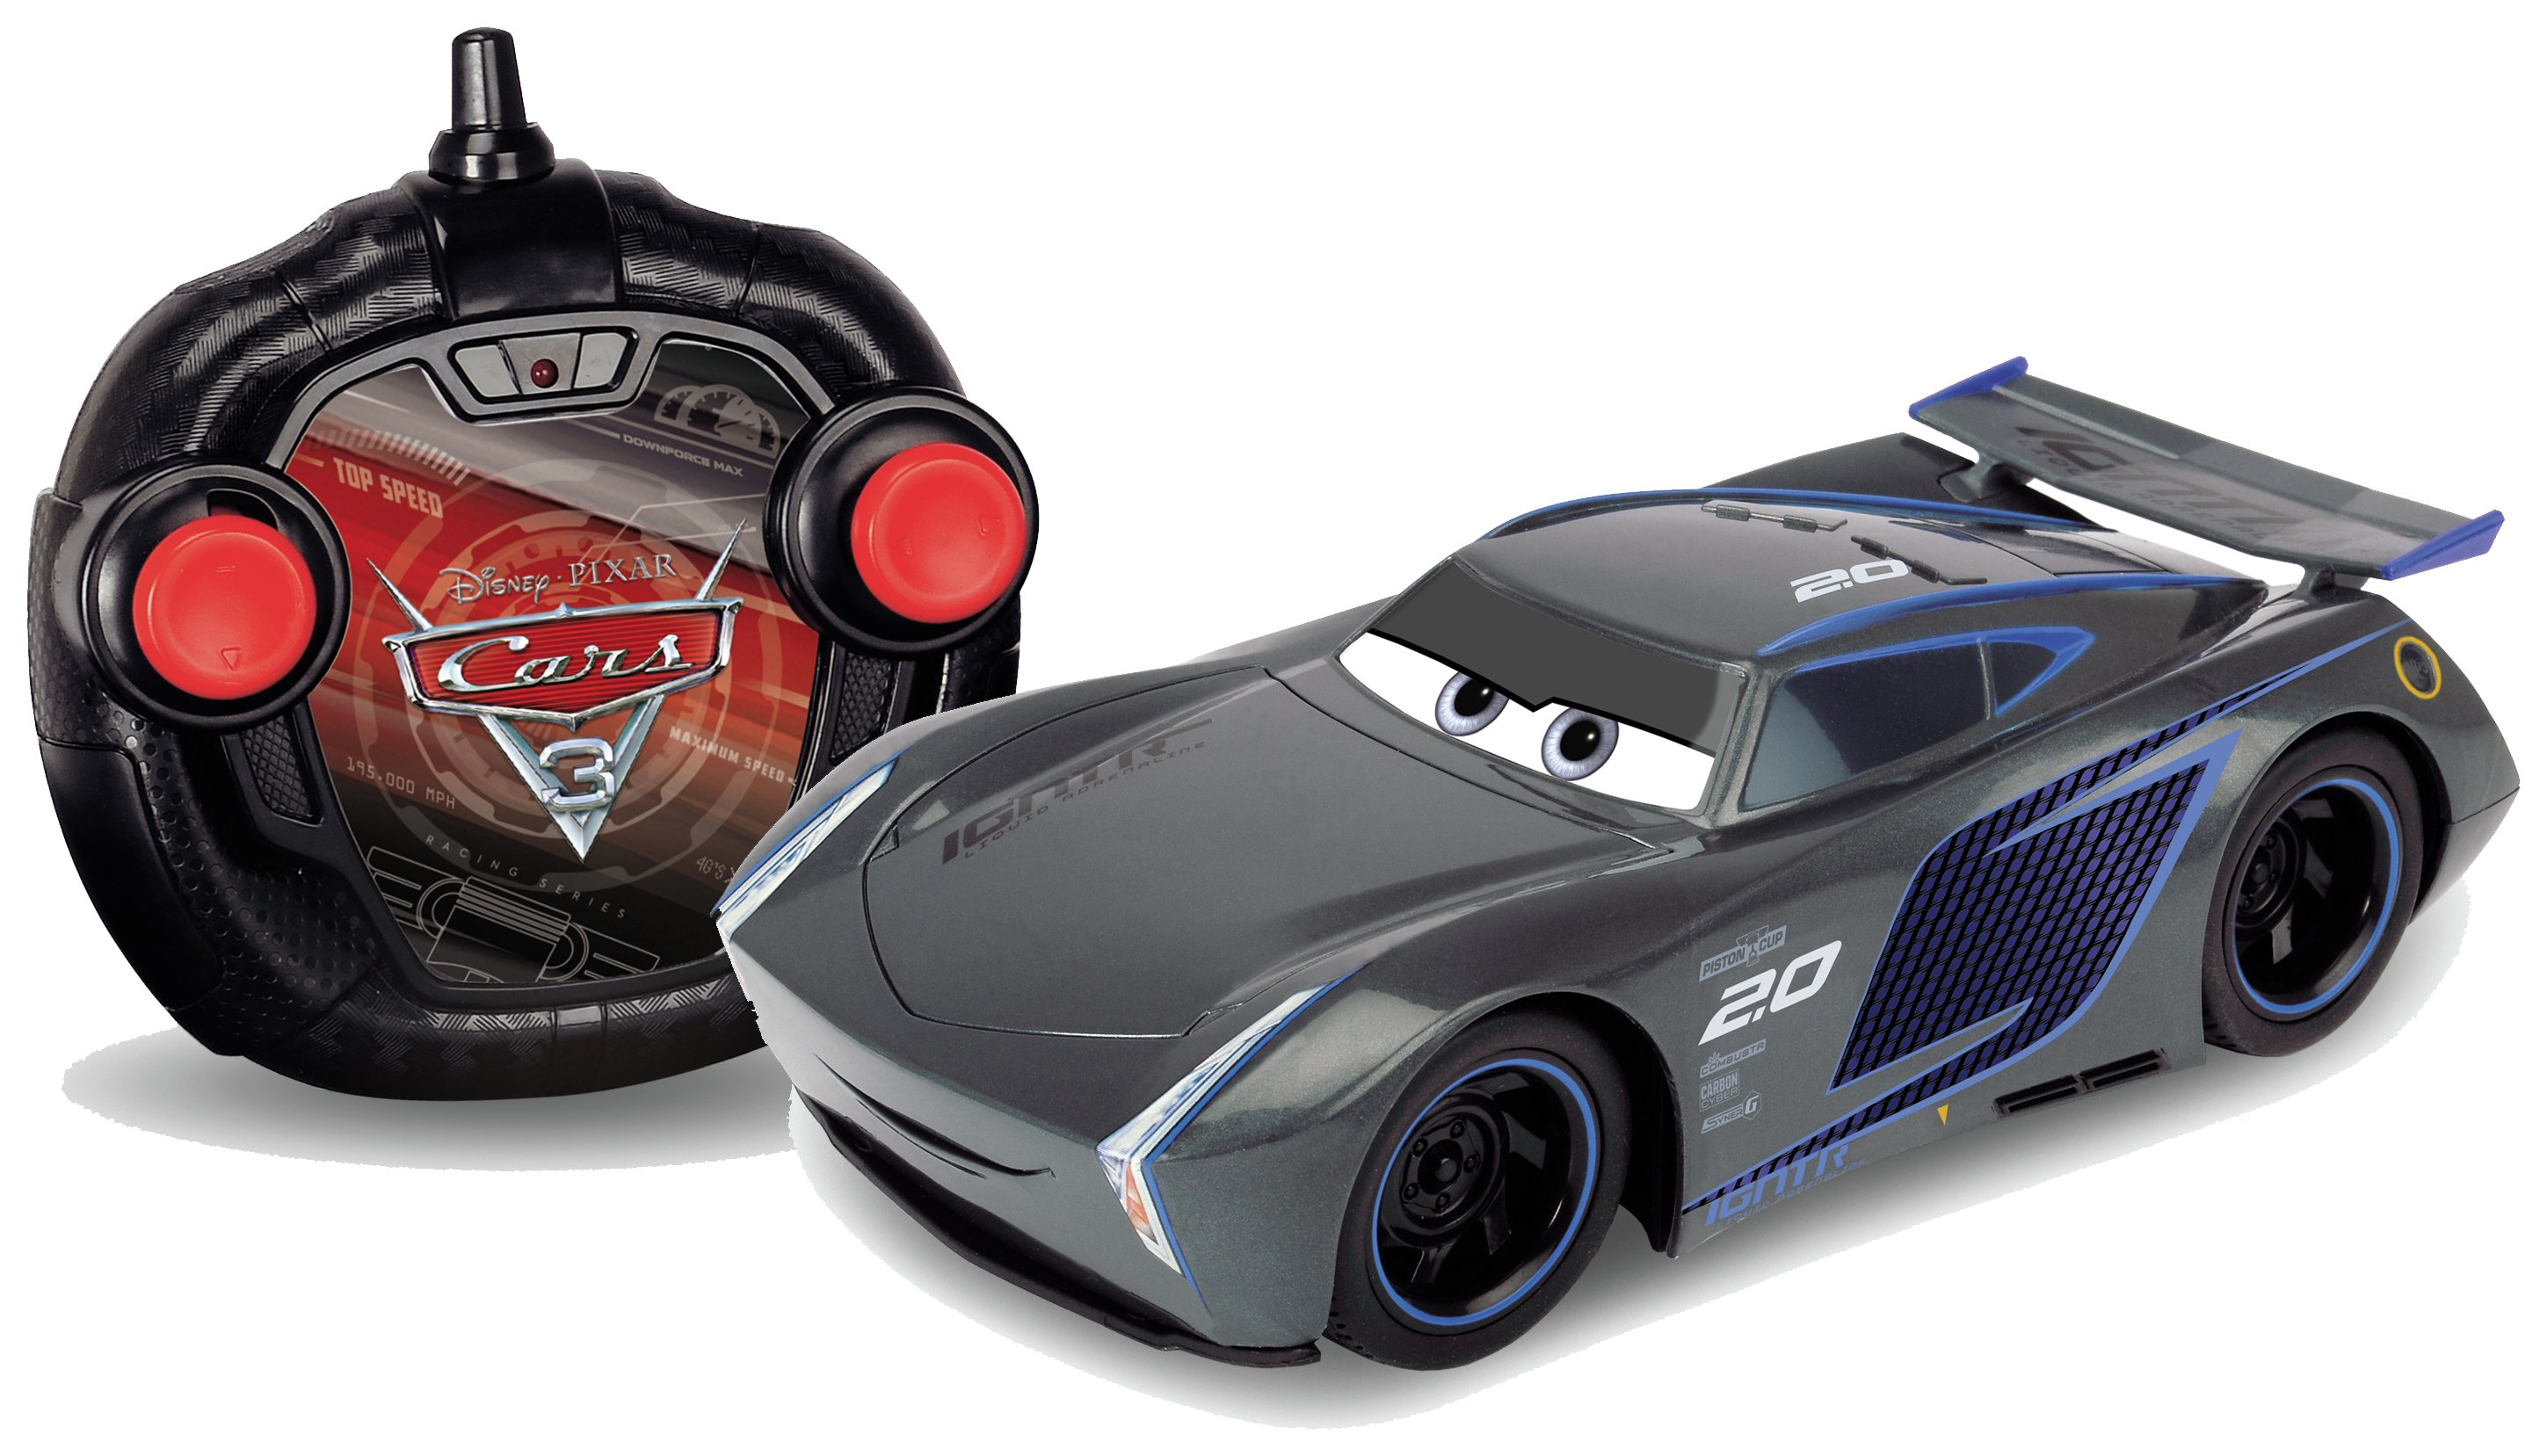 Image of Cars 3 Jackson Storm RC Turbo Racer 1:24